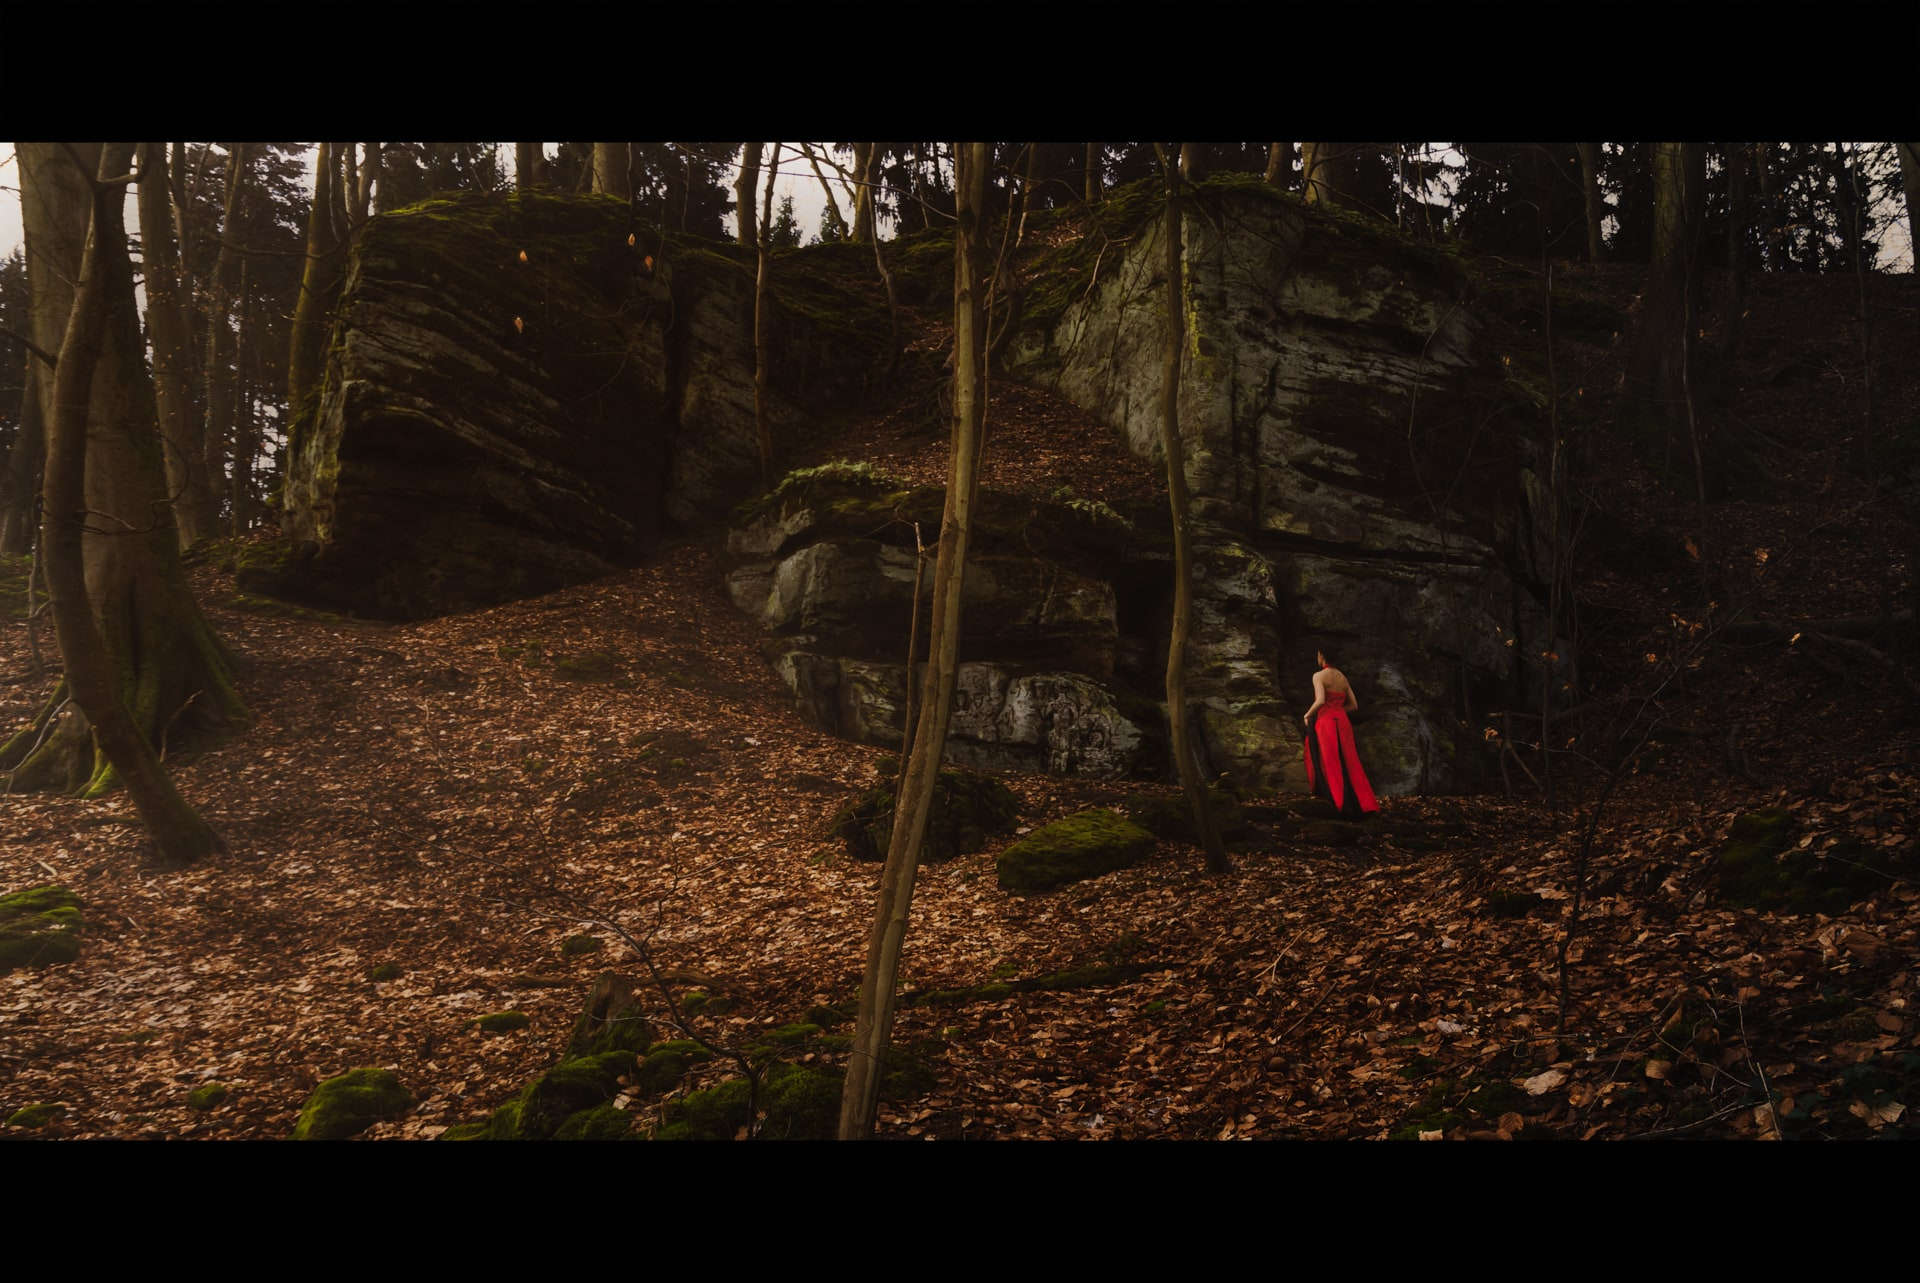 Portrait-Outdoor-Thionville-Red dress in forest-jpitois.fr-2-2